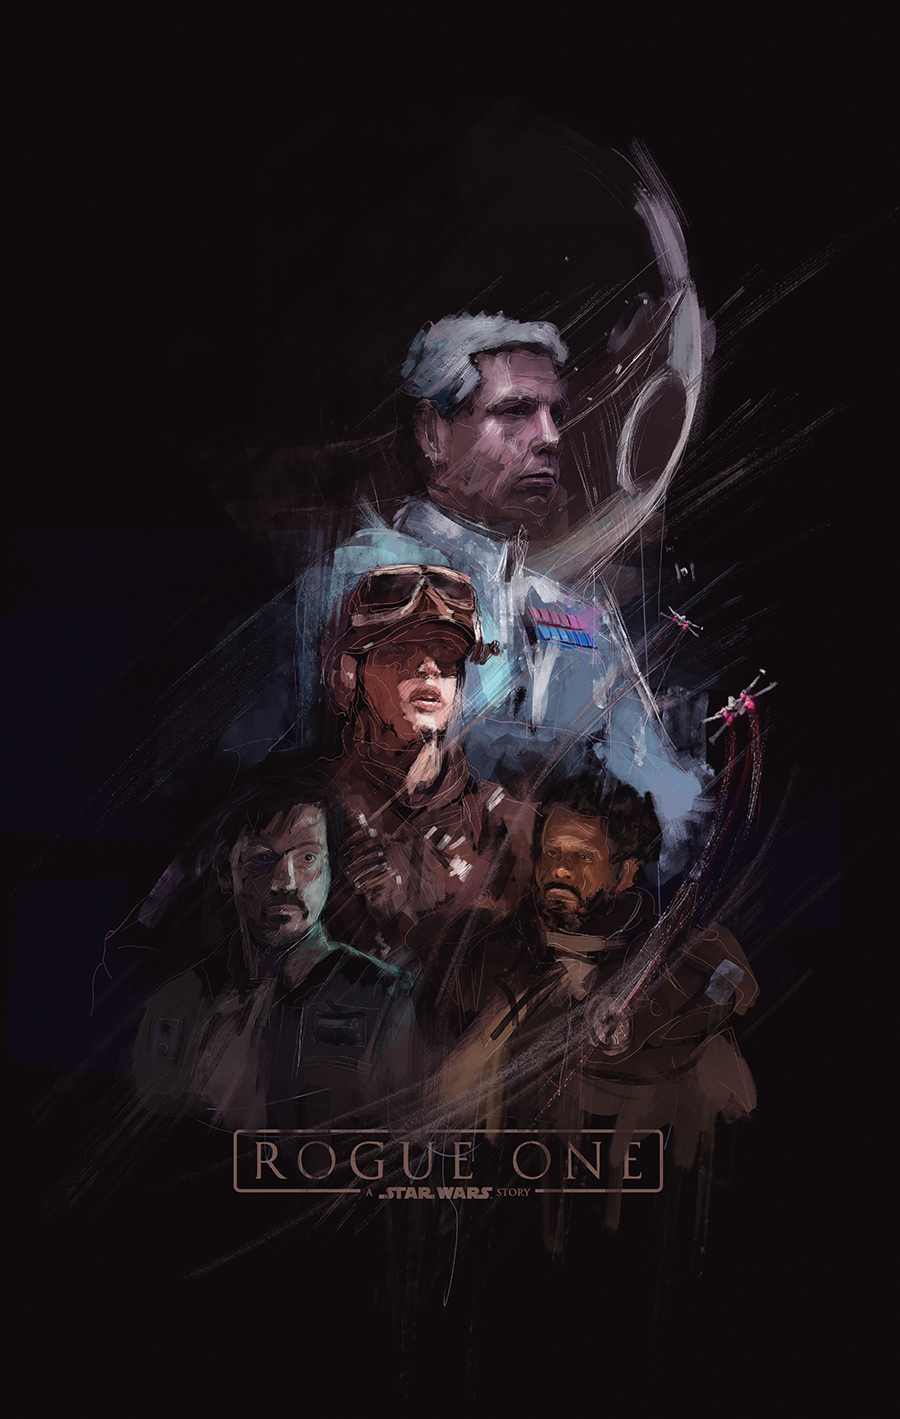 Rogue One Poster by Rafał Rola